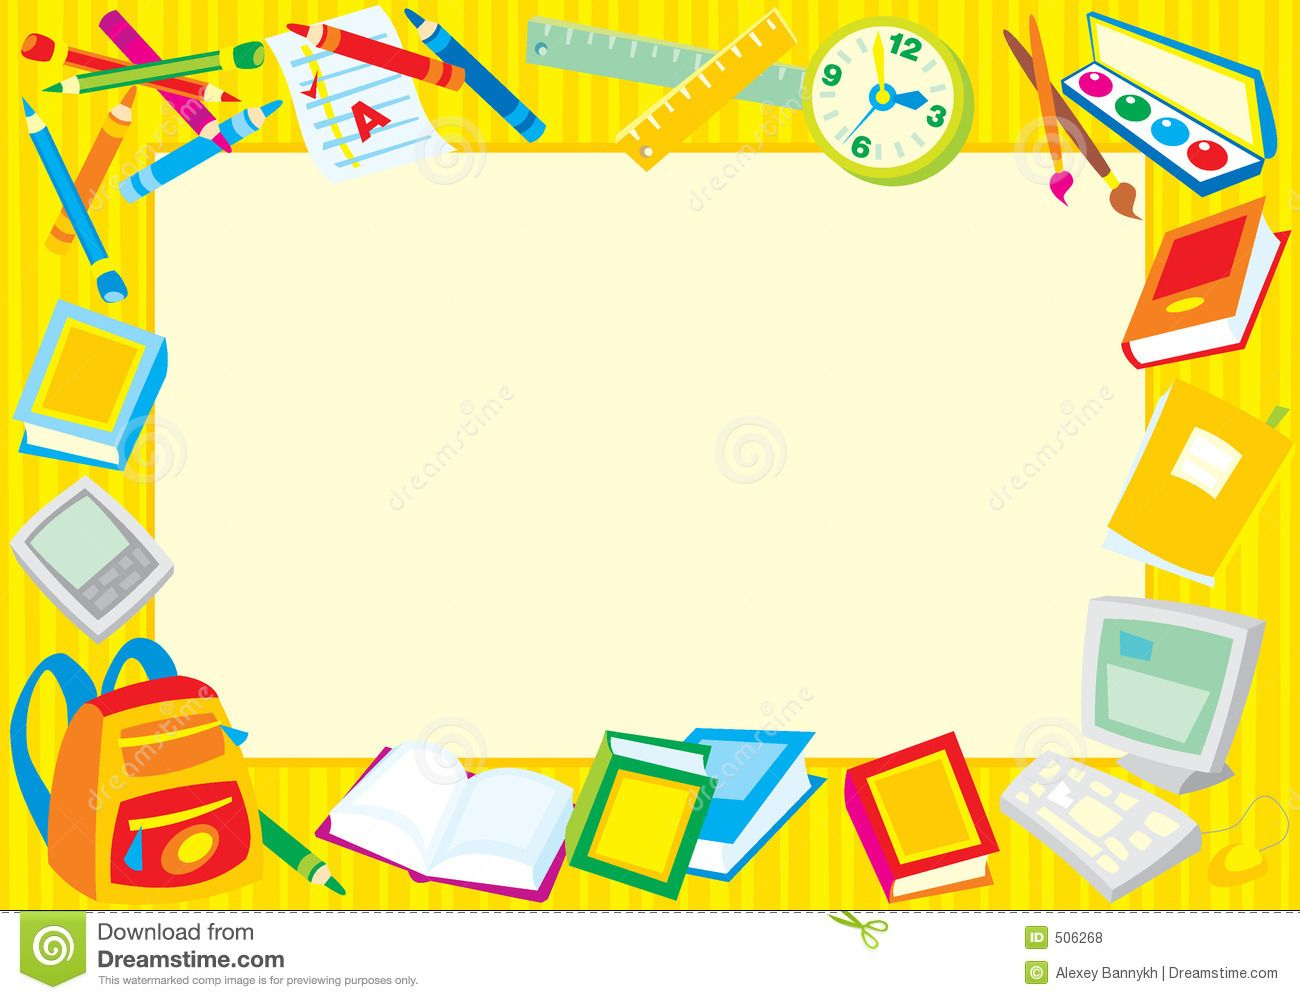 School objects clipart frame clipart black and white school borders clipart - Free Large Images | Stuff to Buy ... clipart black and white